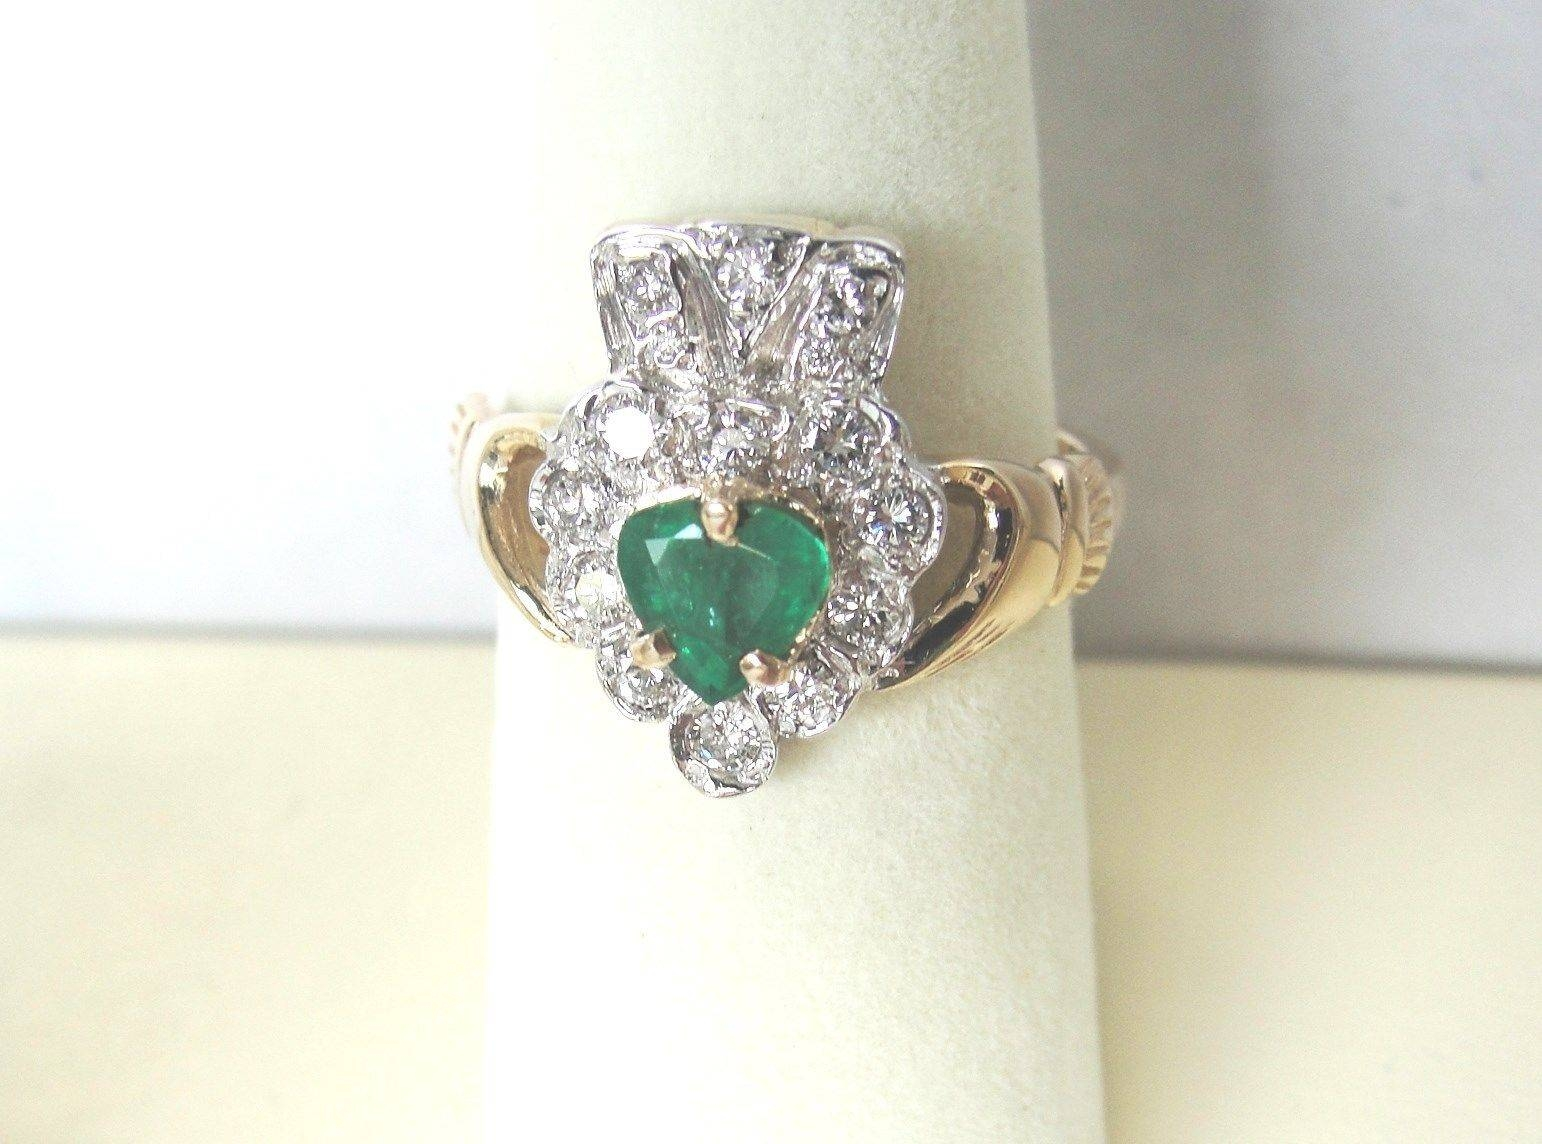 Ultimate 14K Yellow Gold Diamond & Emerald Claddagh Ringfacet Regarding Emerald Claddagh Engagement Rings (View 15 of 15)